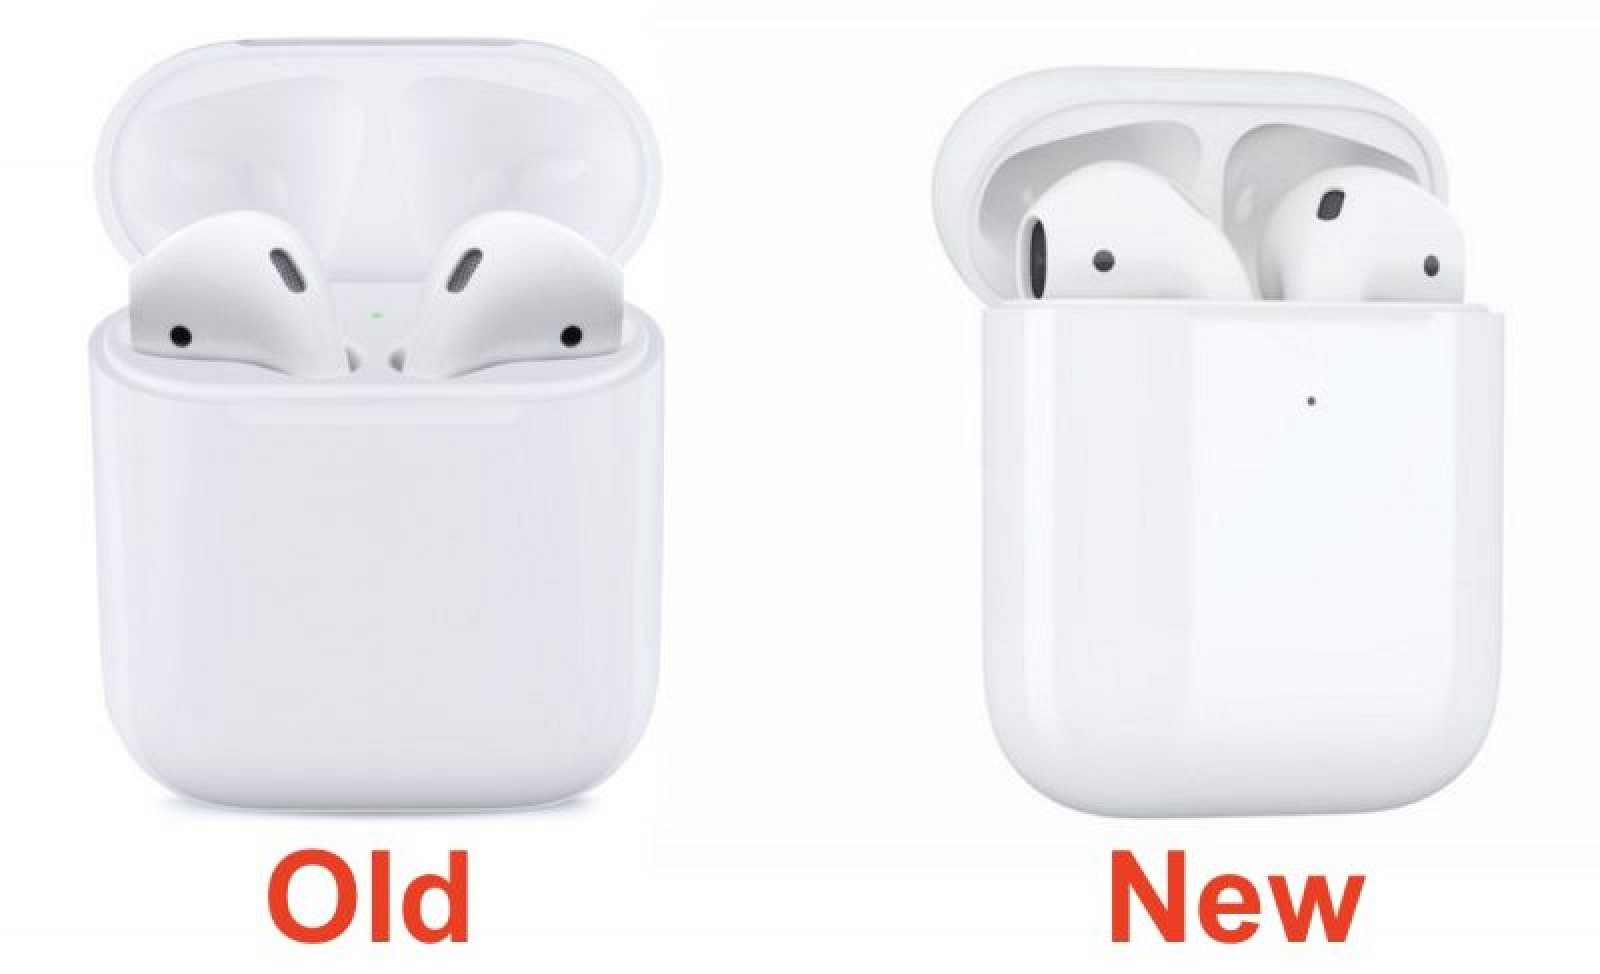 Black Friday Car Deals >> Apple Introduces New Second-Generation AirPods Case With Wireless Charging Support - MacRumors